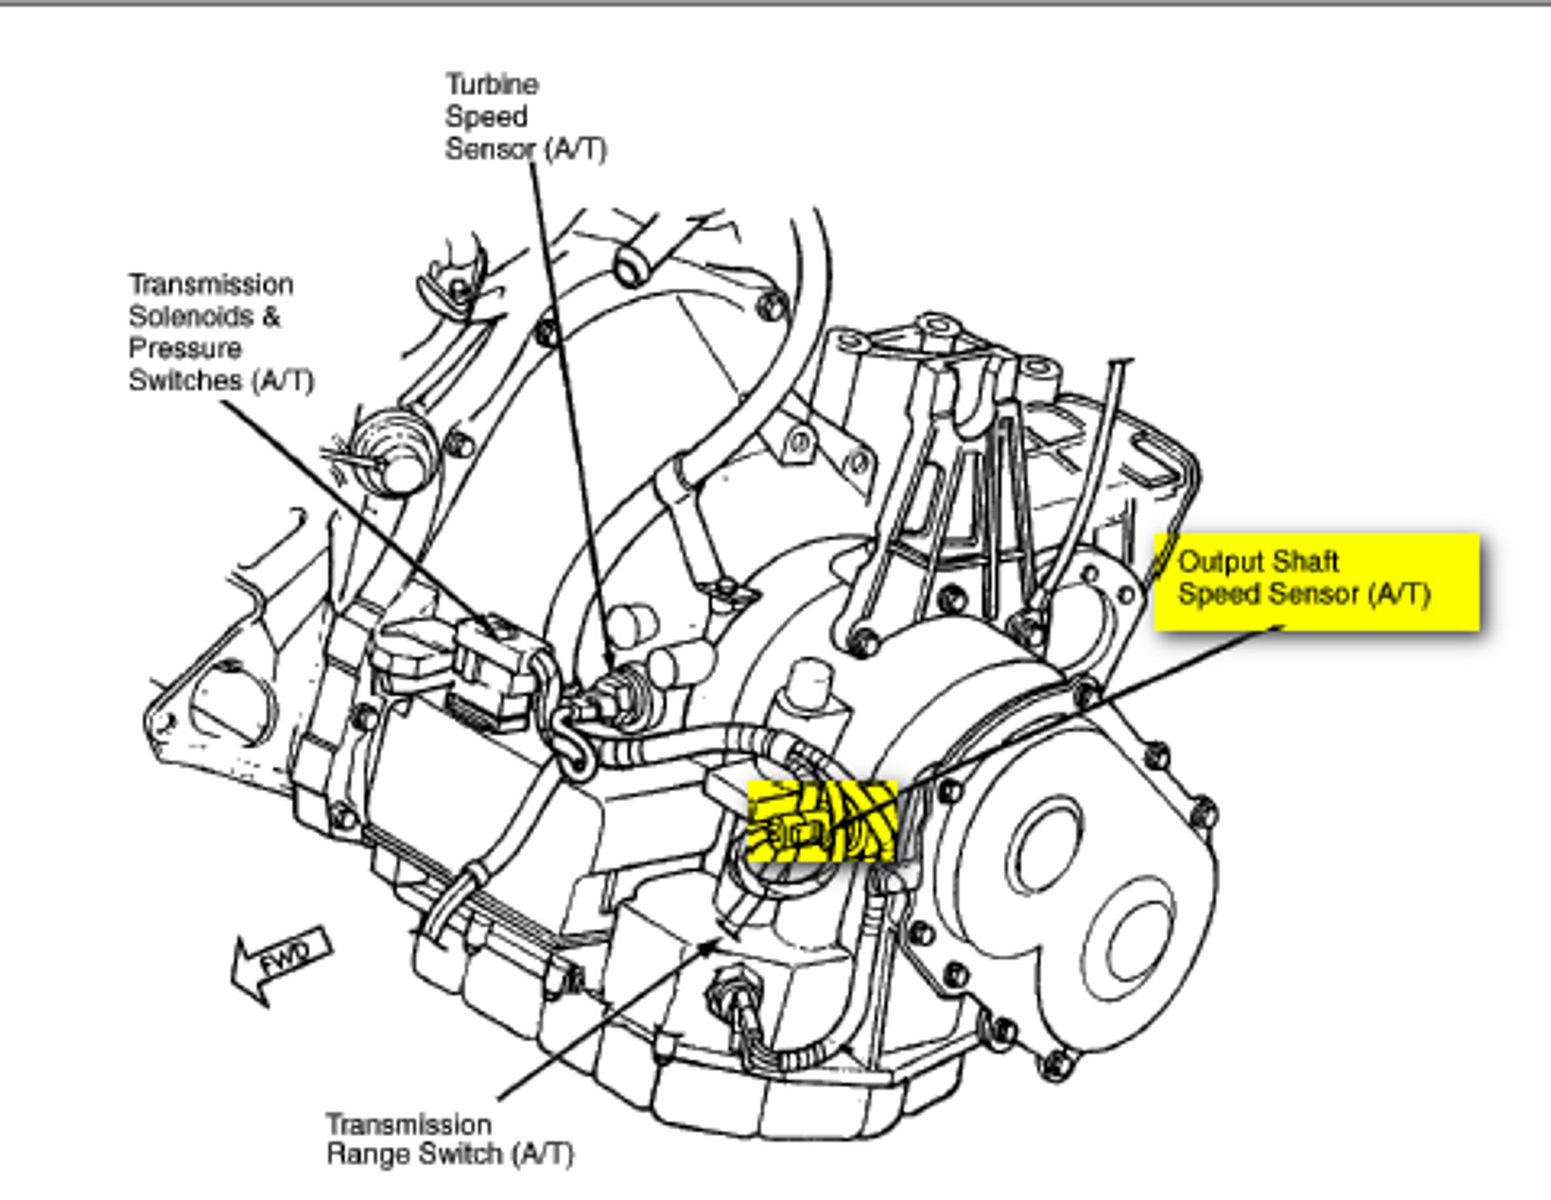 1995 Ford Taurus Se Engine on ford e series 350 1995 fuse box diagram